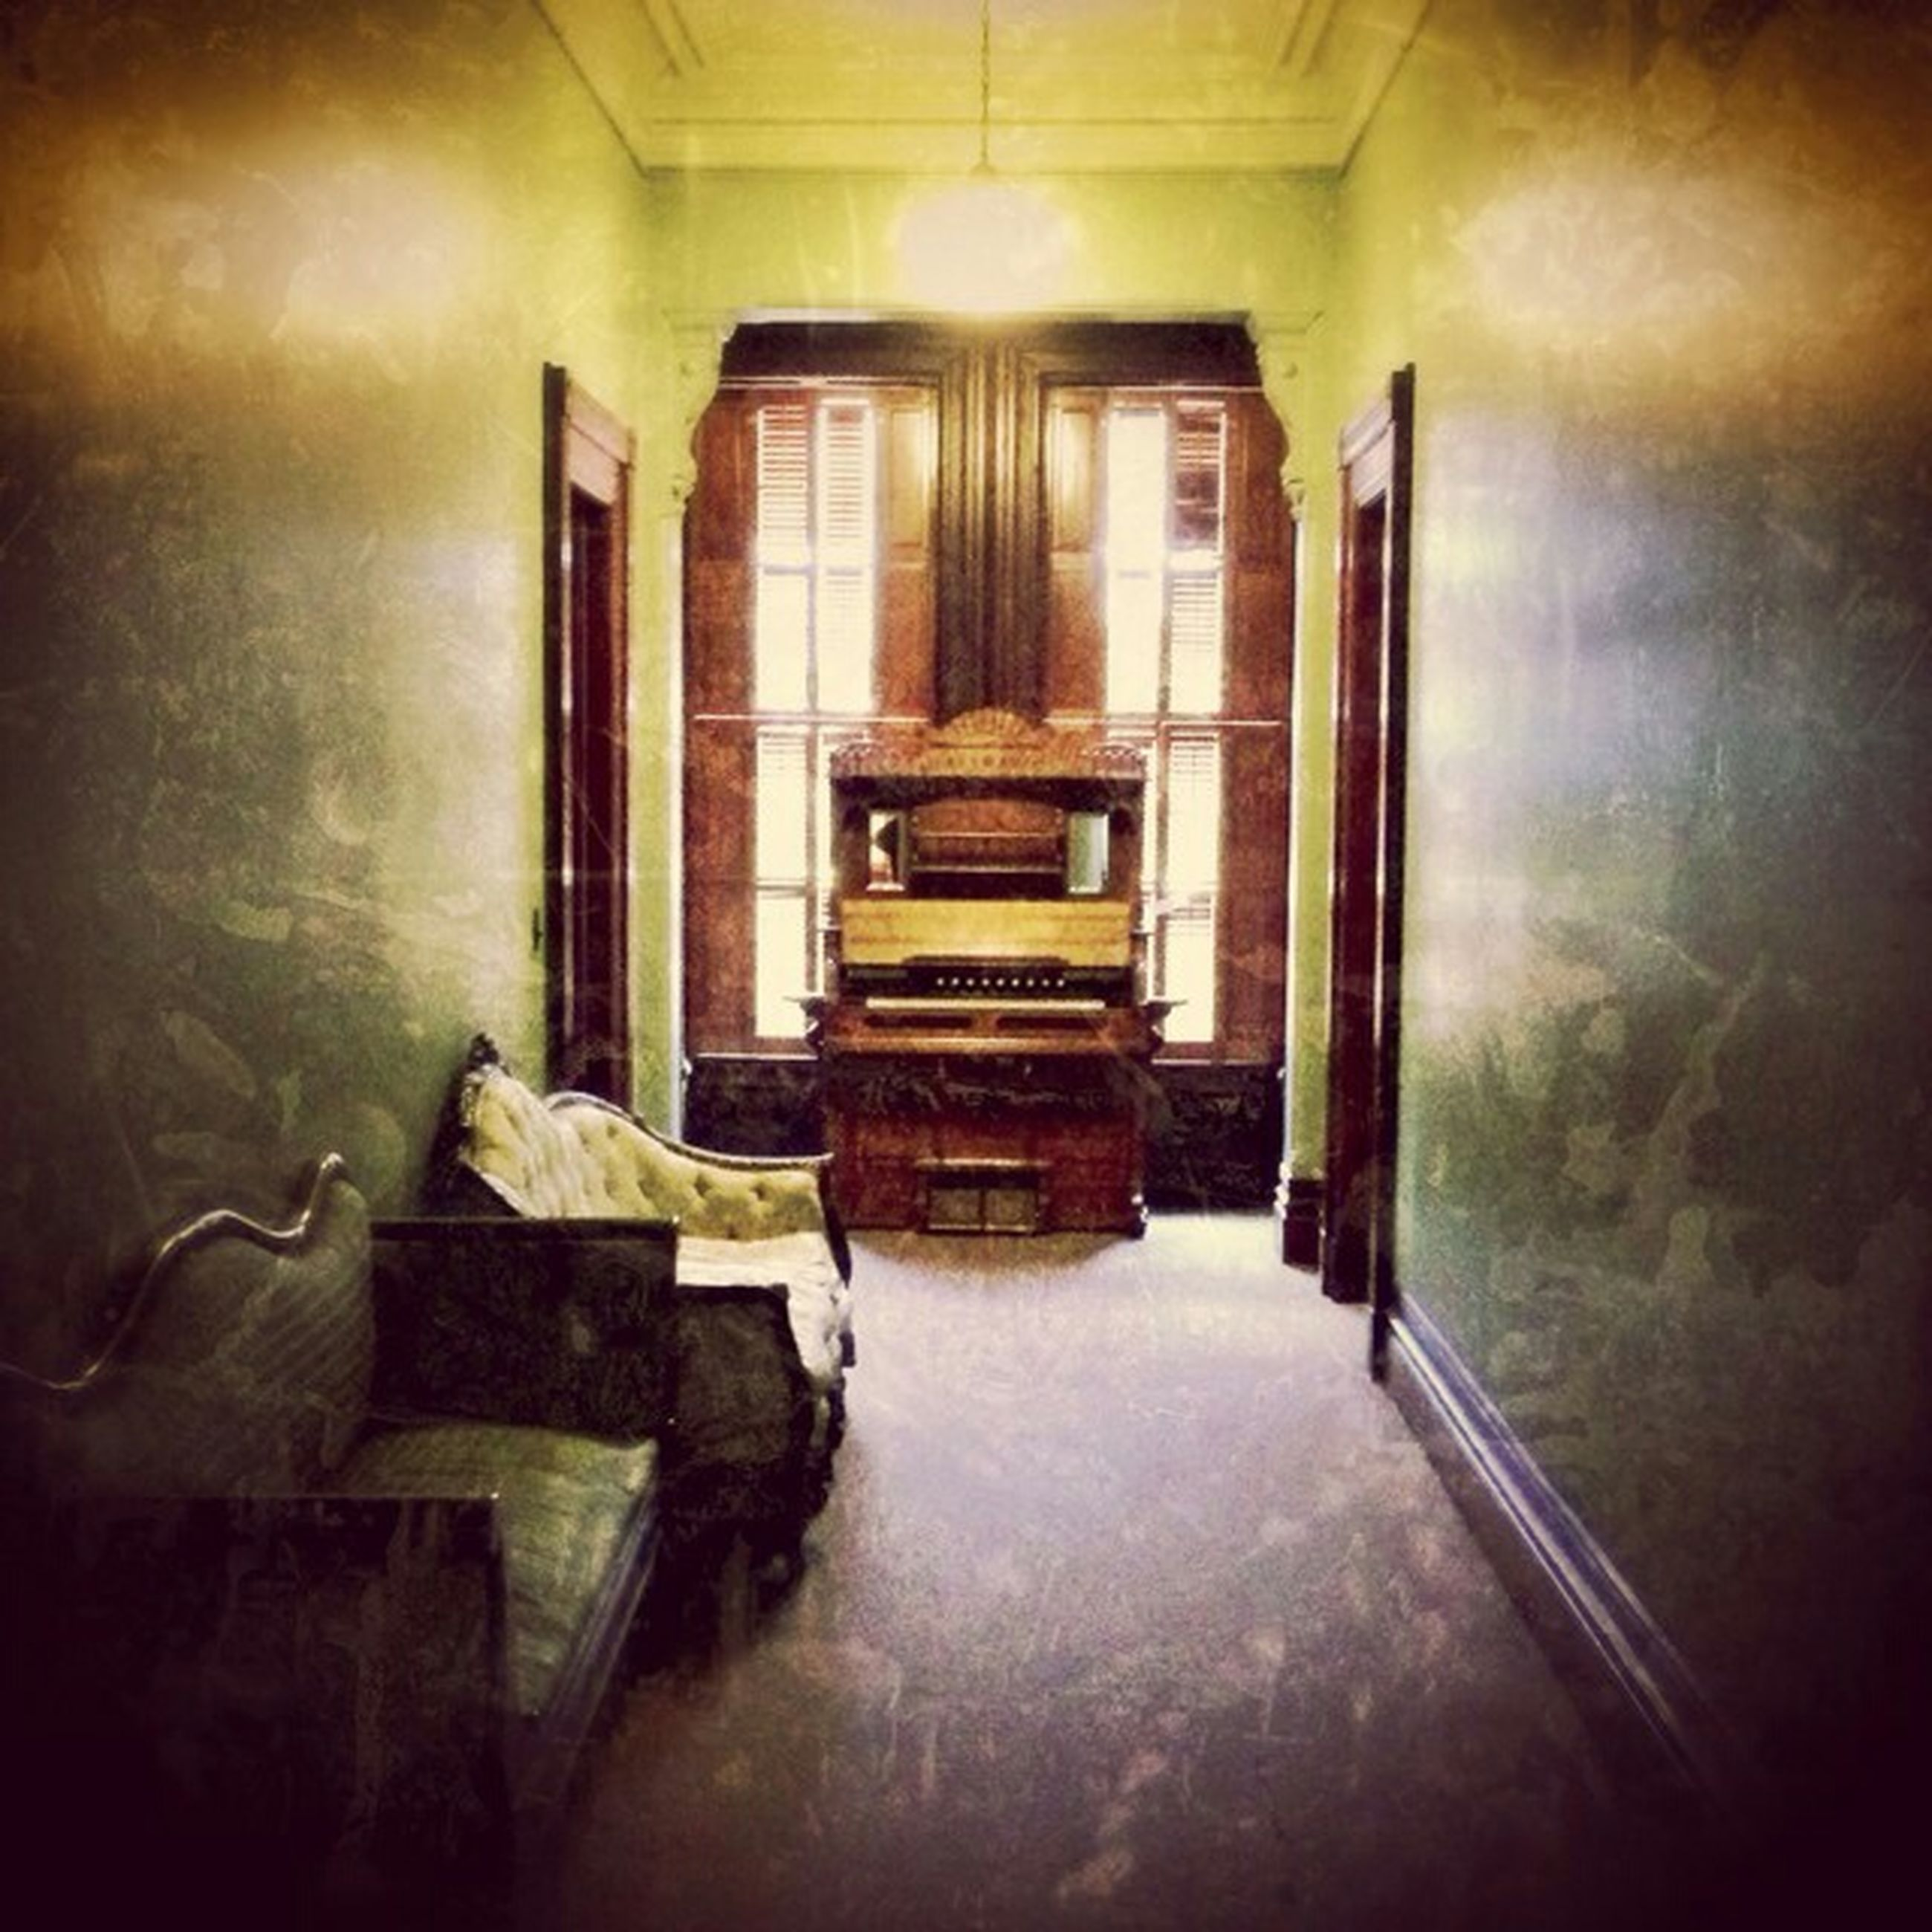 indoors, window, house, abandoned, home interior, door, architecture, built structure, obsolete, absence, interior, damaged, open, empty, domestic room, room, old, reflection, glass - material, run-down